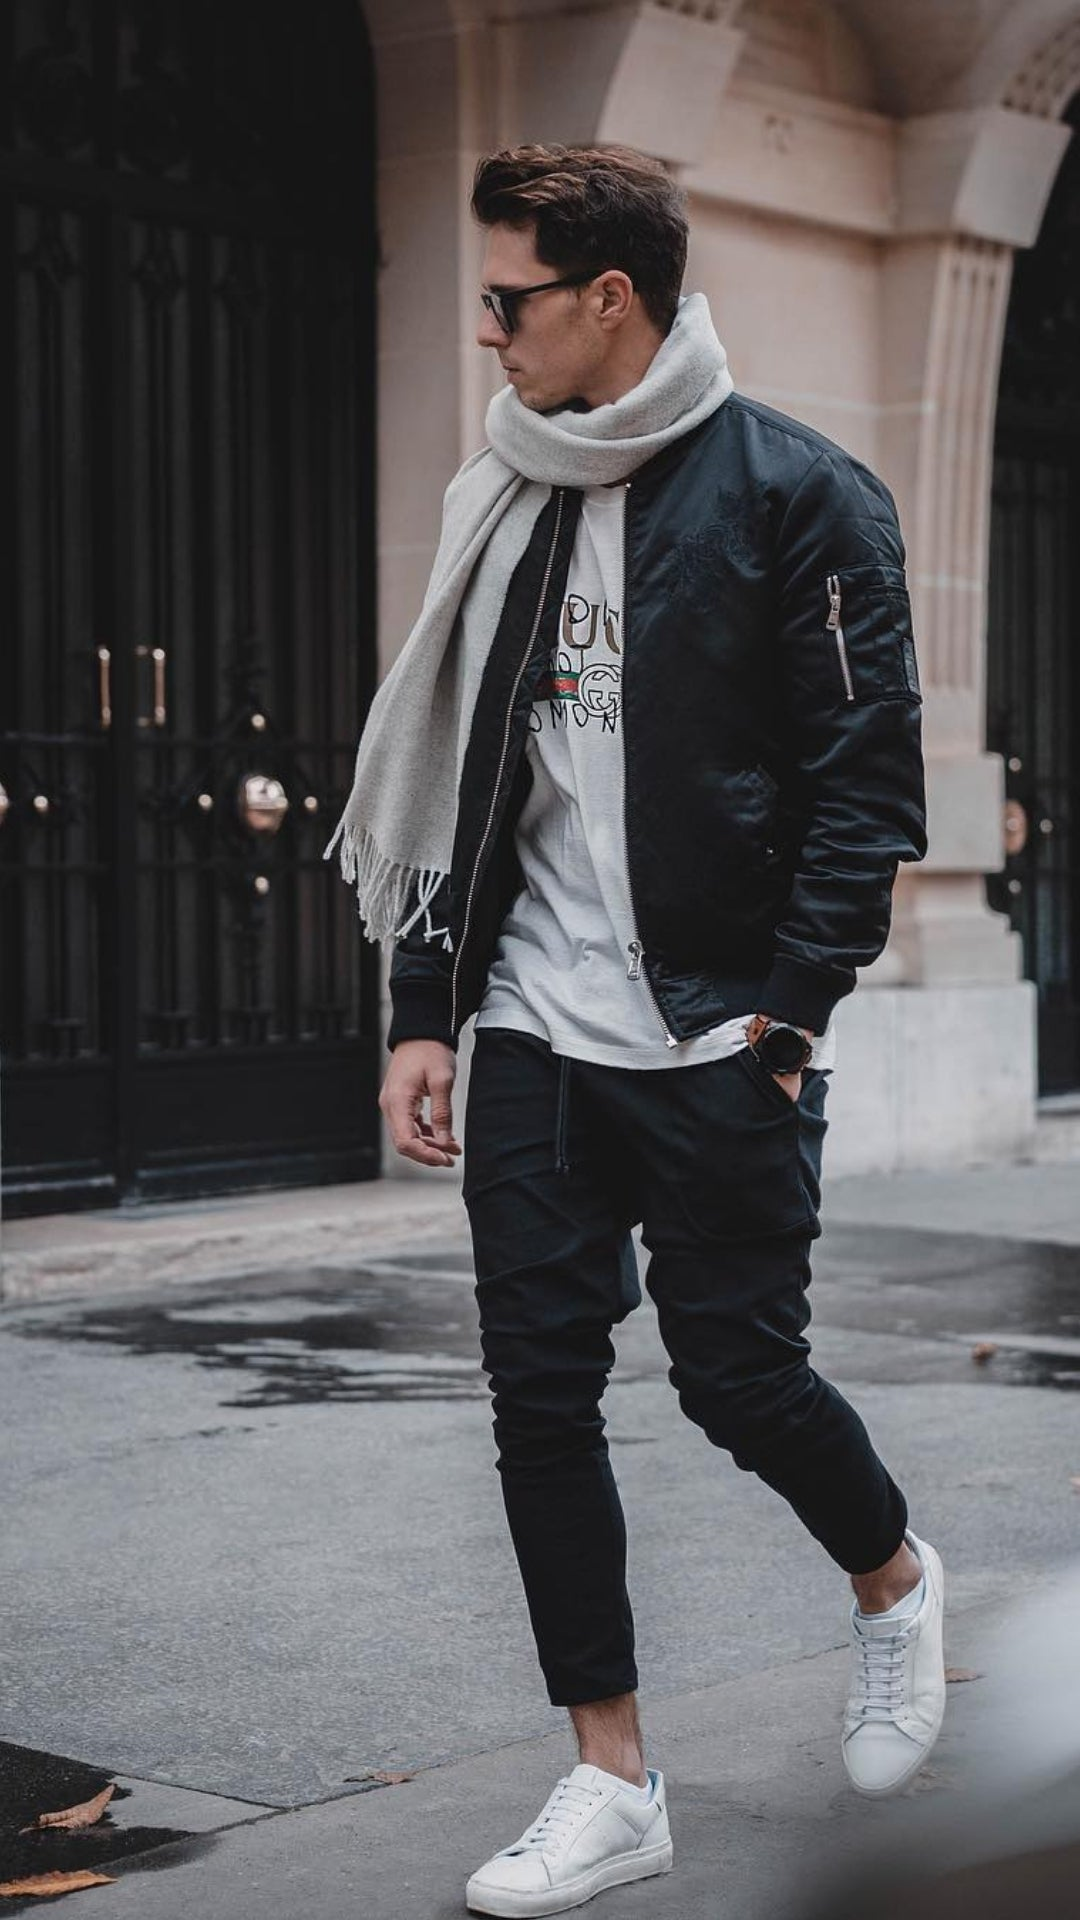 Casual Outfits For Young Guys #casual #outfits #mensfashion #streetstyle #youngguys